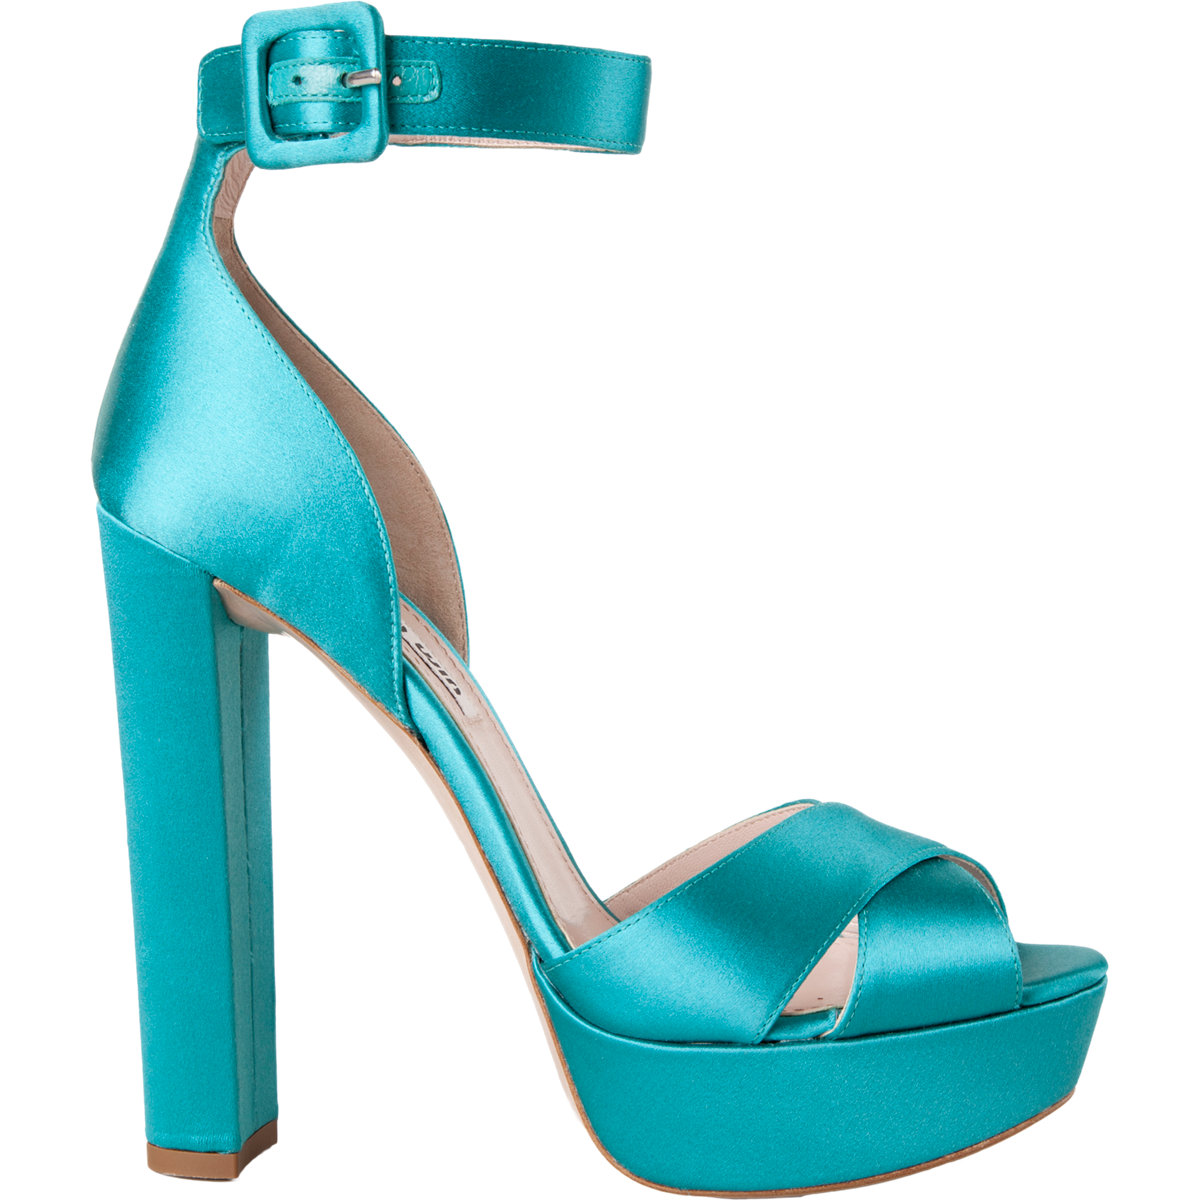 Dress Shoes For Men Women For Girls With Jeans Designs 2013 Turquoise Dress Shoes Pictures ...